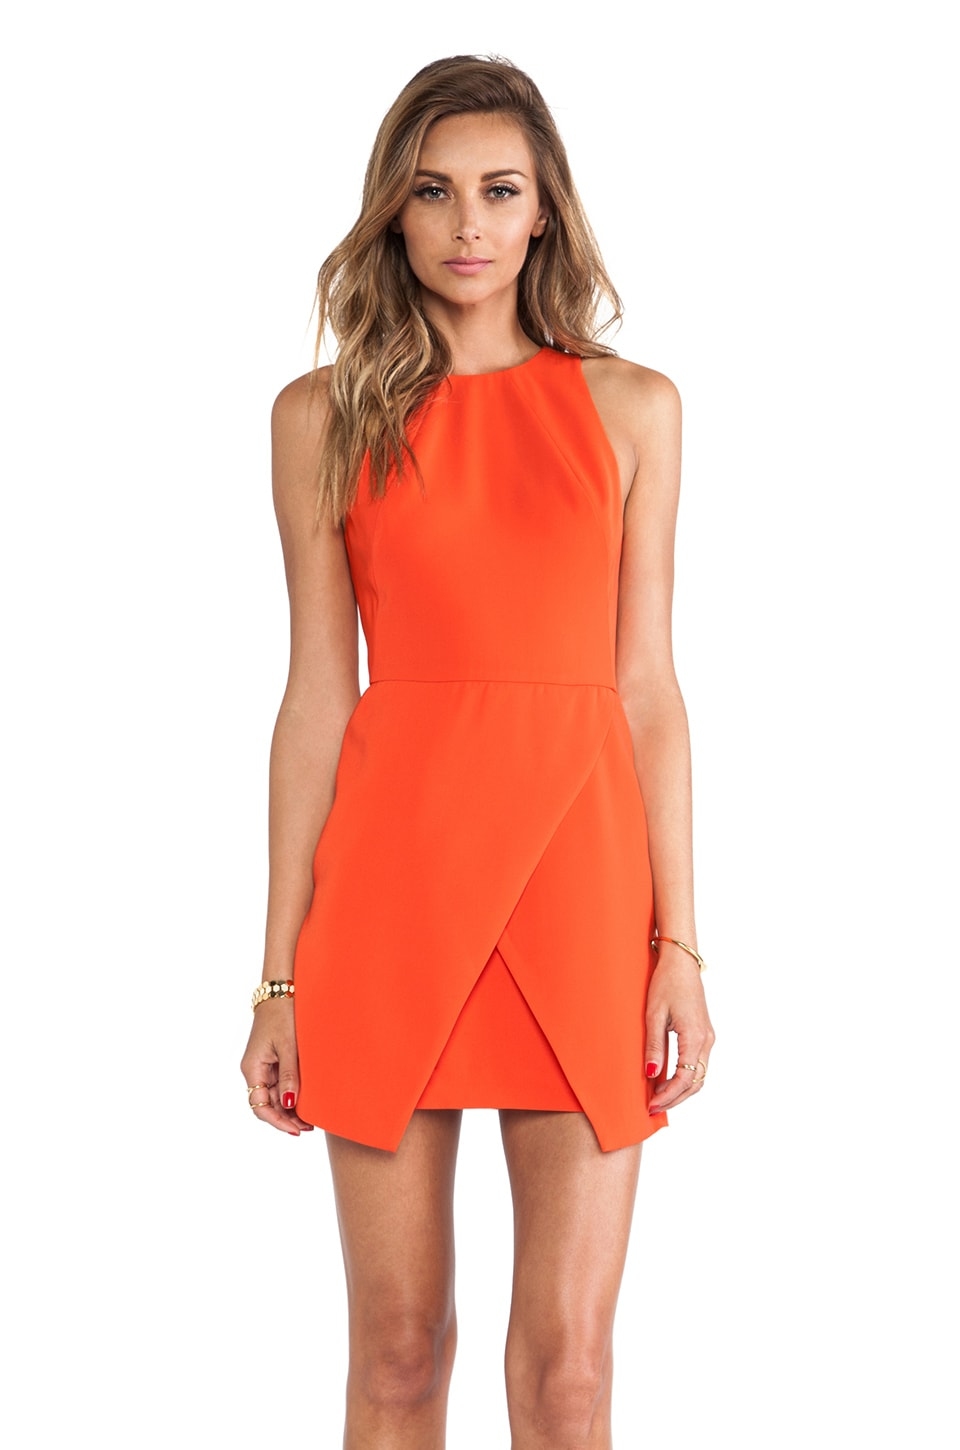 keepsake Such Great Heights Dress in Flame